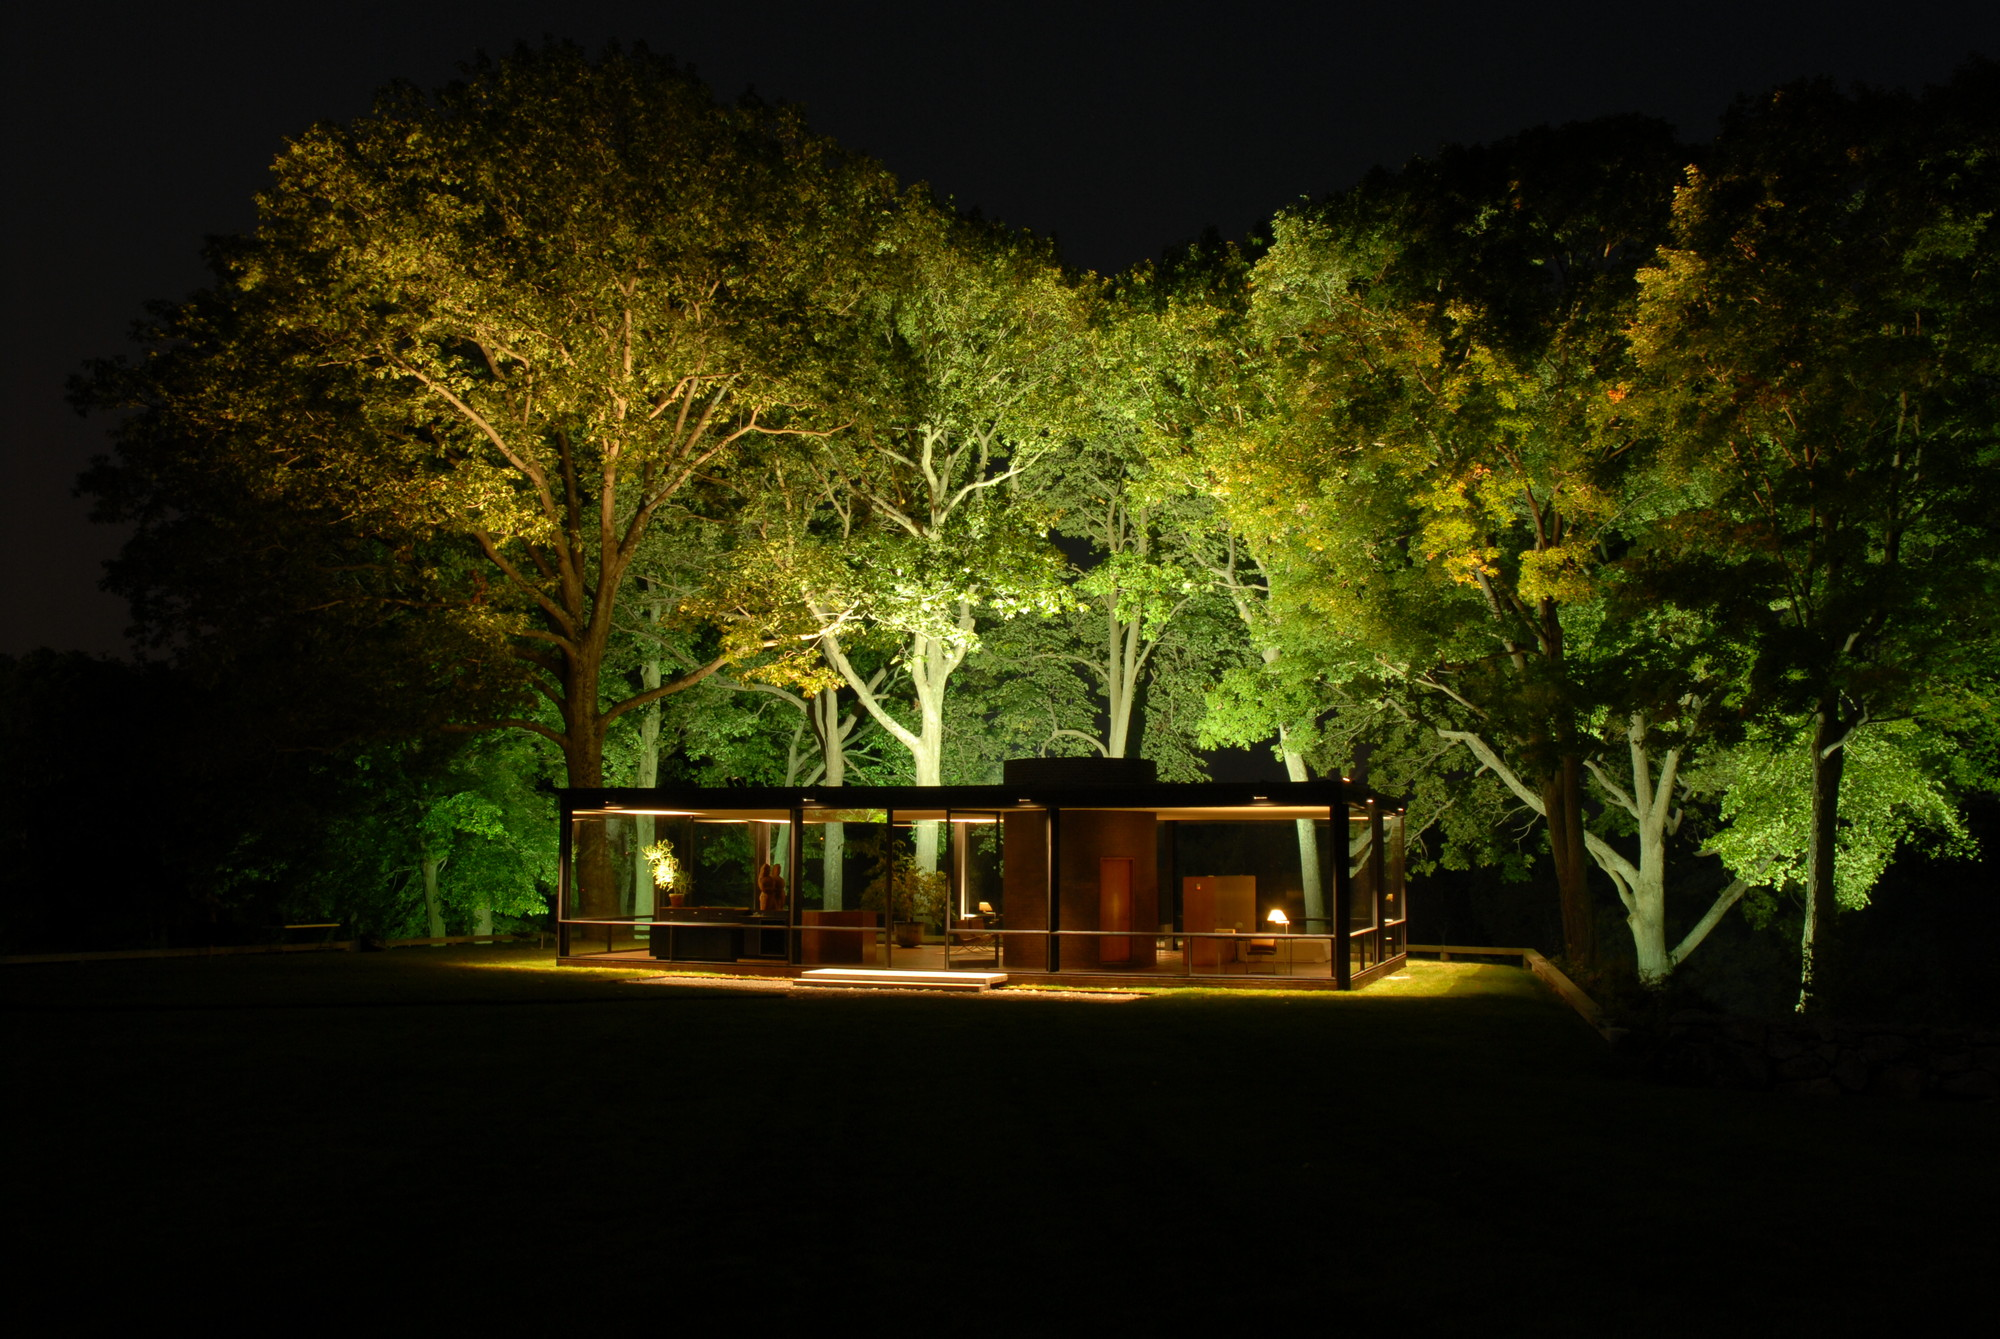 Night lights designs - Glass House At Night By Steve Brosnahan Architect Philip Johnson Lighting Design